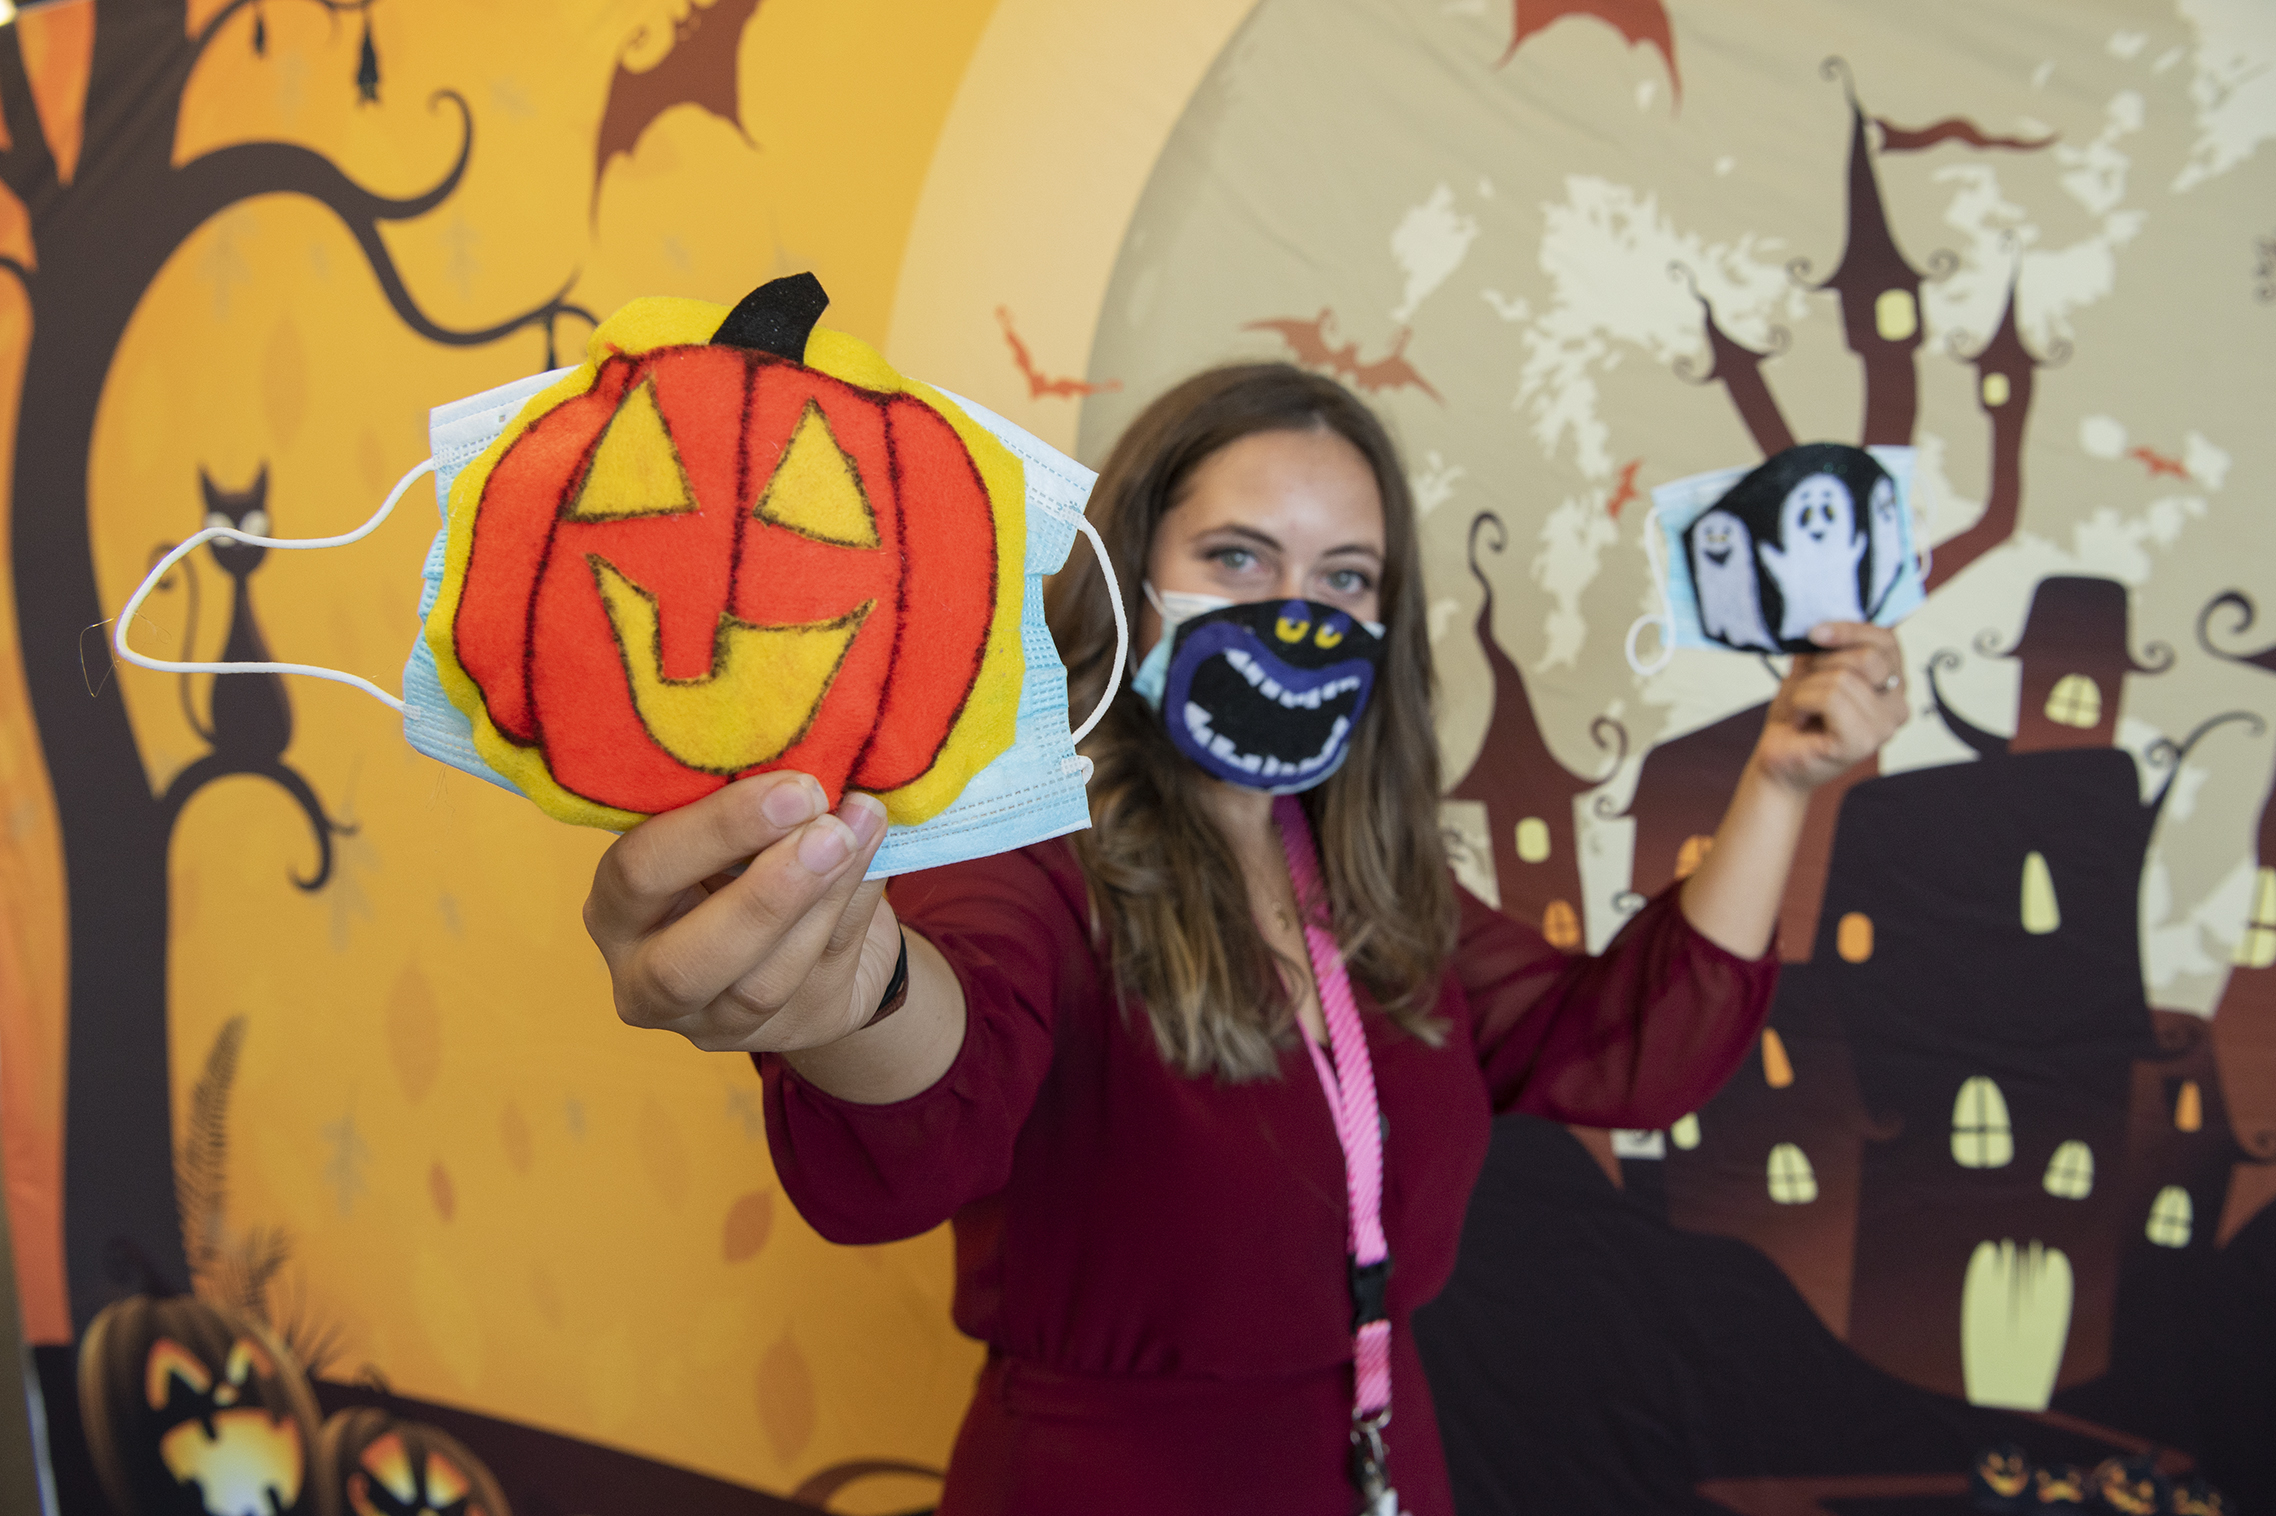 City of St. Catharines to host Pumpkinville celebration this fall